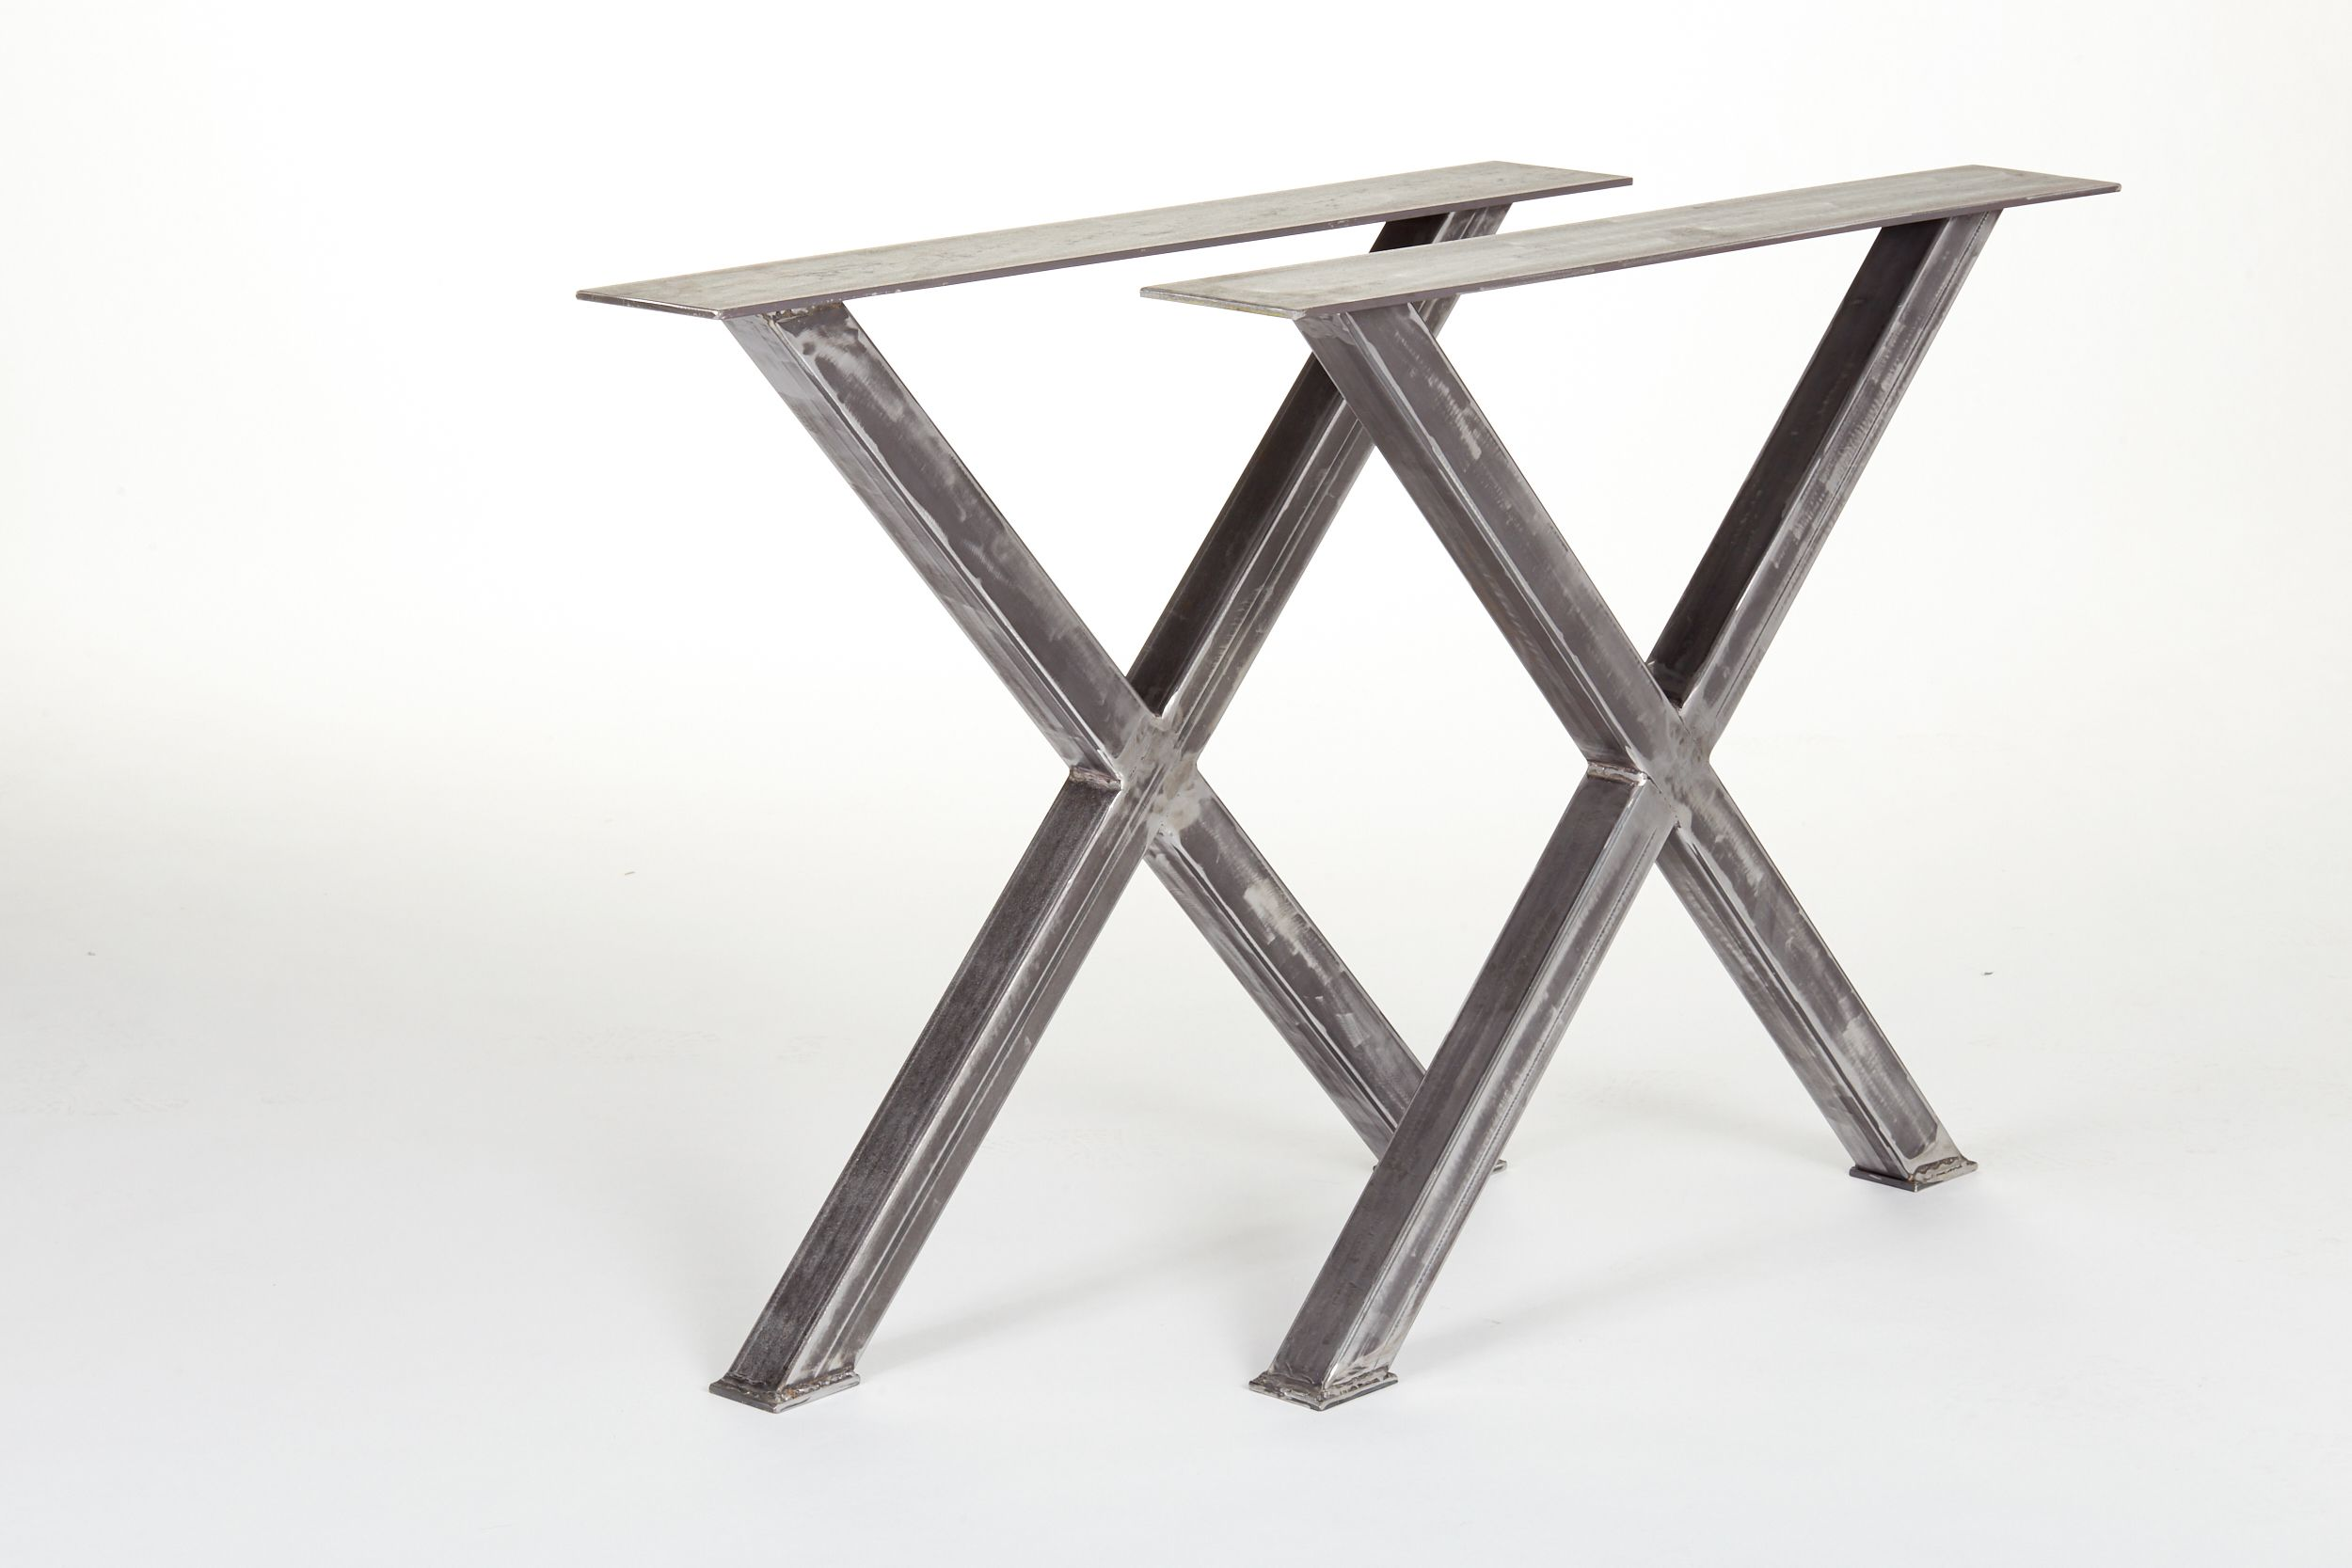 Handmade Industrial Steel Dining Table X Legs by The Urban